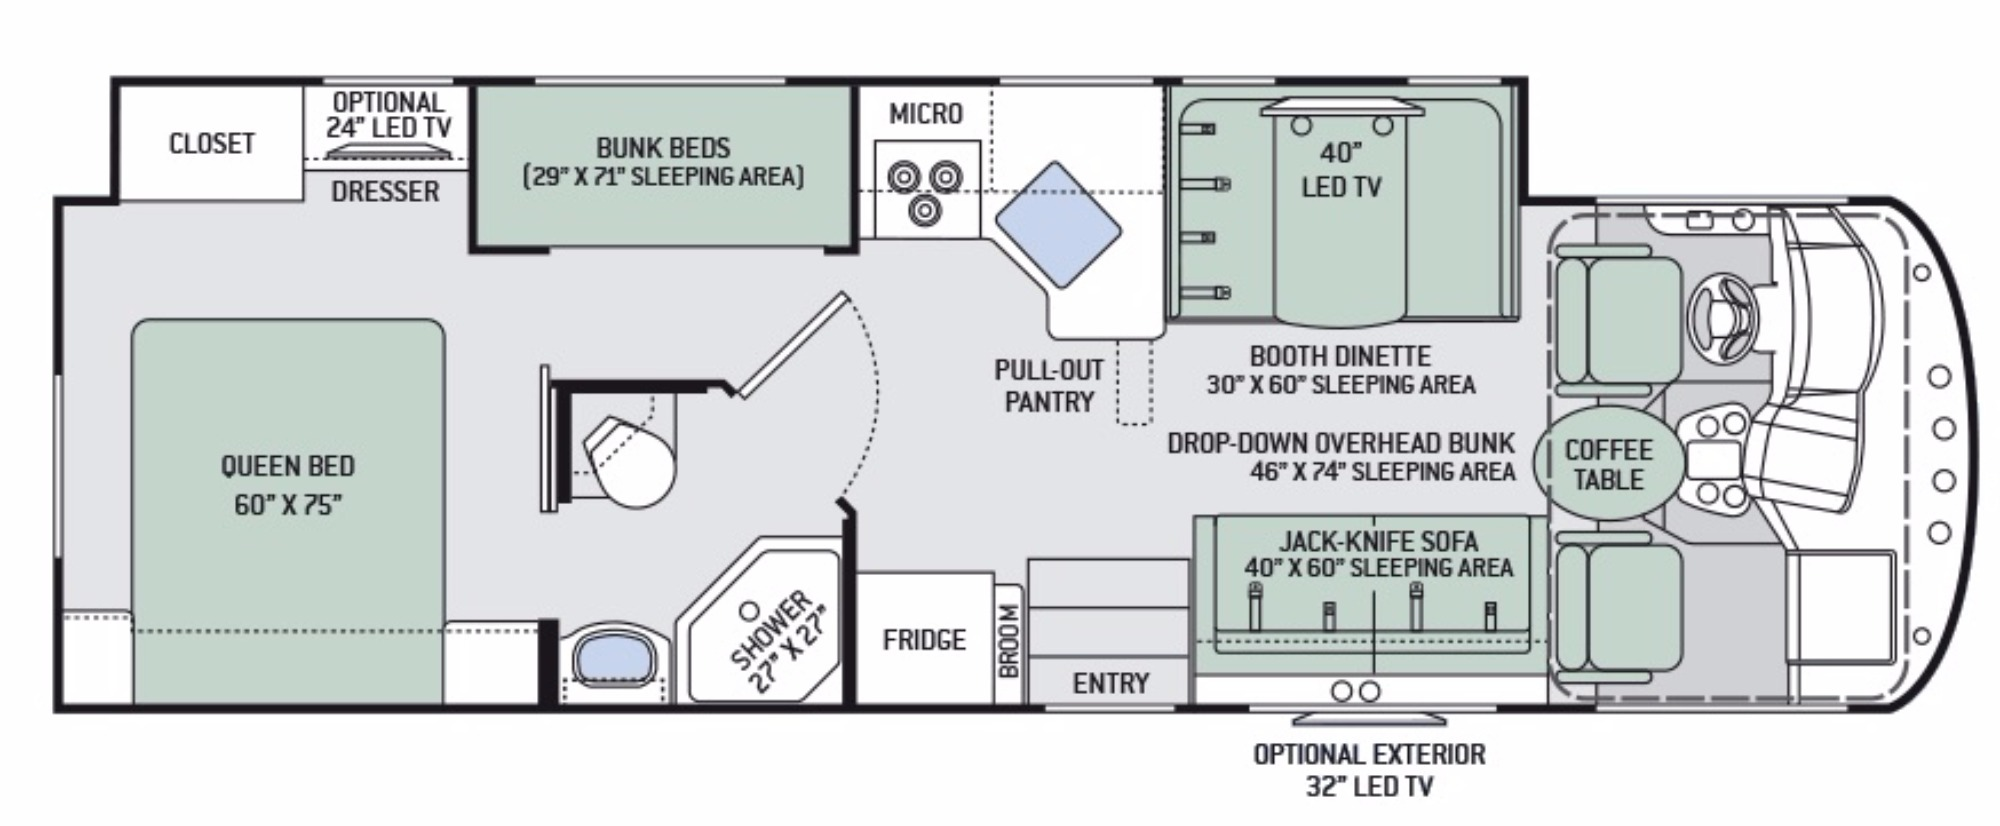 """•3-Burner Gas Cooktop/Oven with Bi-Fold Glass Cover •32"""" LED TV in Bedroom •Blu-Ray Player in Living Area •Bluetooth® Coach Radio System in Bedroom with Exterior Speakers •Bunk Beds w/Bunk Ladder •Ceiling Ducted Air Conditioning System •Dash Workstation with 110-volt & 12-volt Outlets •Denver Mattress® Queen Size Bed •Dream Dinette® Booth with Cup Holders •Exterior 32"""" LED TV •Leatherette Sofa Bed •Microwave Oven •Motorhome Mudroom™ Compartment •Power Drop Down Hide-Away Overhead Bunk with Bunk Ladder •Touchscreen AM/FM Dash Radio with Bluetooth® •Two (2) 15.5"""" LED TVs & DVD Player in Bunk Bed Area •Water Heater Bypass System  Sleeping Capacity 8 Seat Belt Position 6    . Thor Motor Coach A.C.E 2017"""